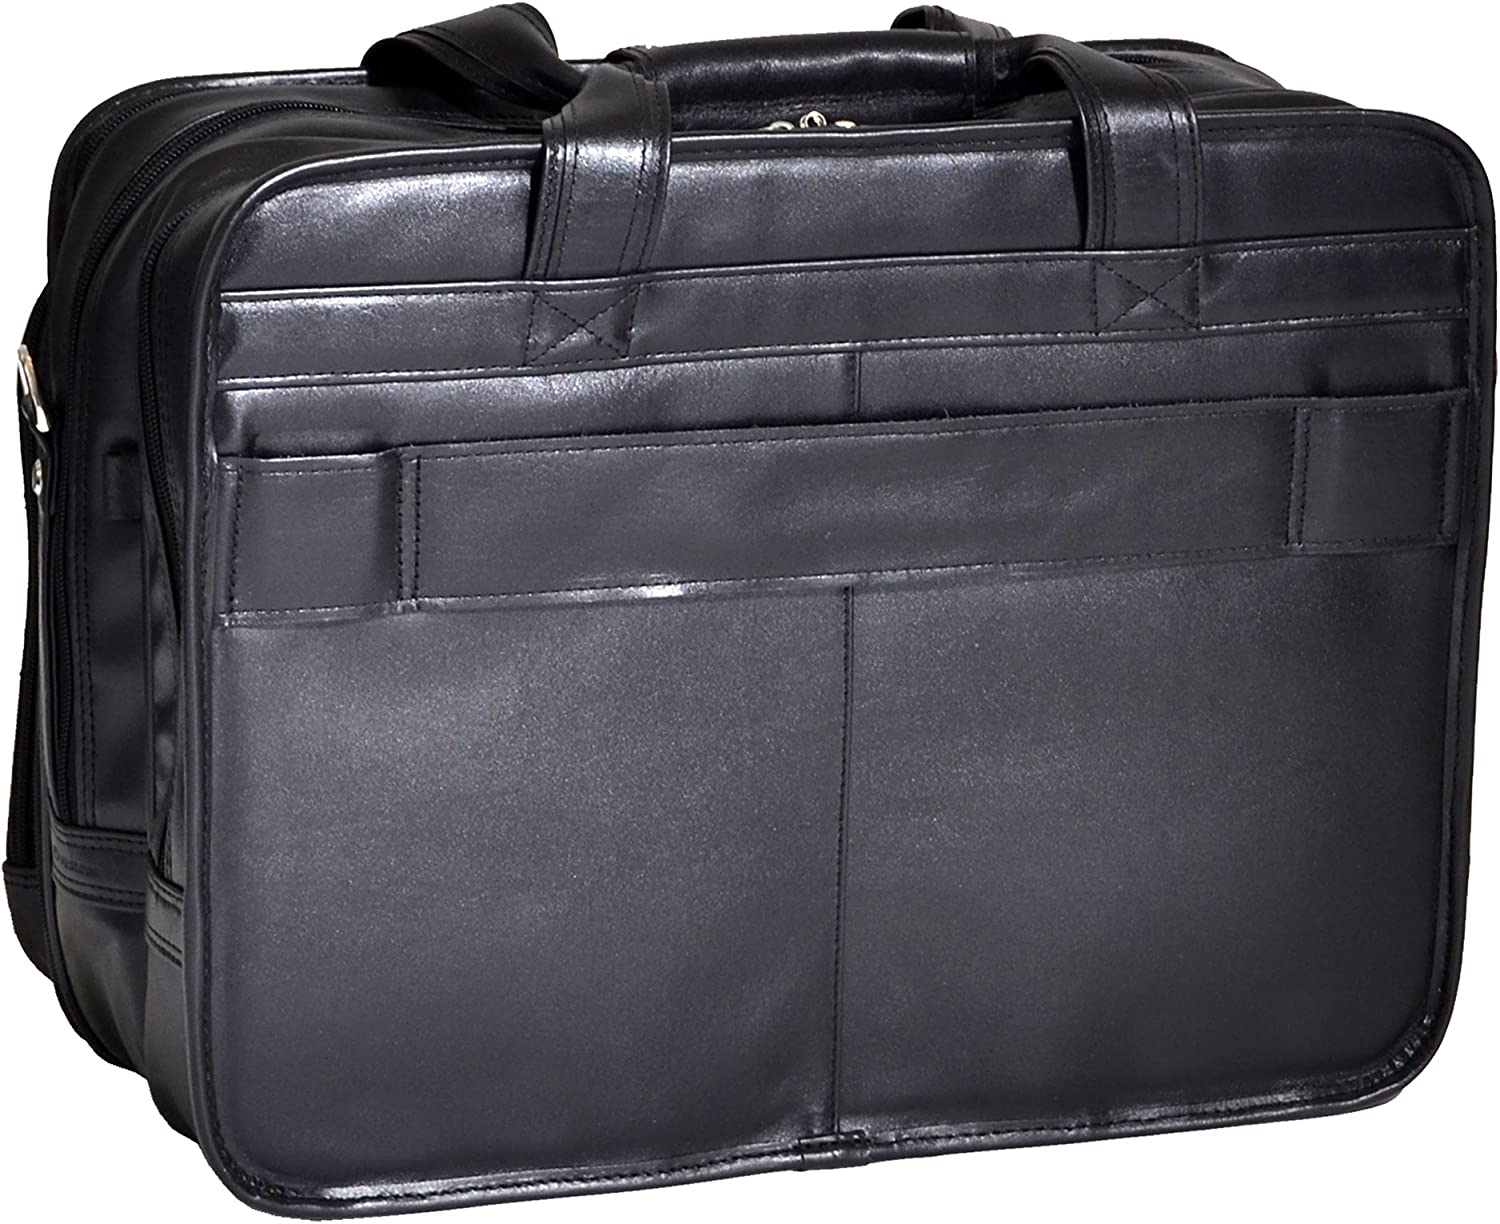 McKlein USA Roosevelt Leather Detachable Wheeled 17 Inch Laptop Case